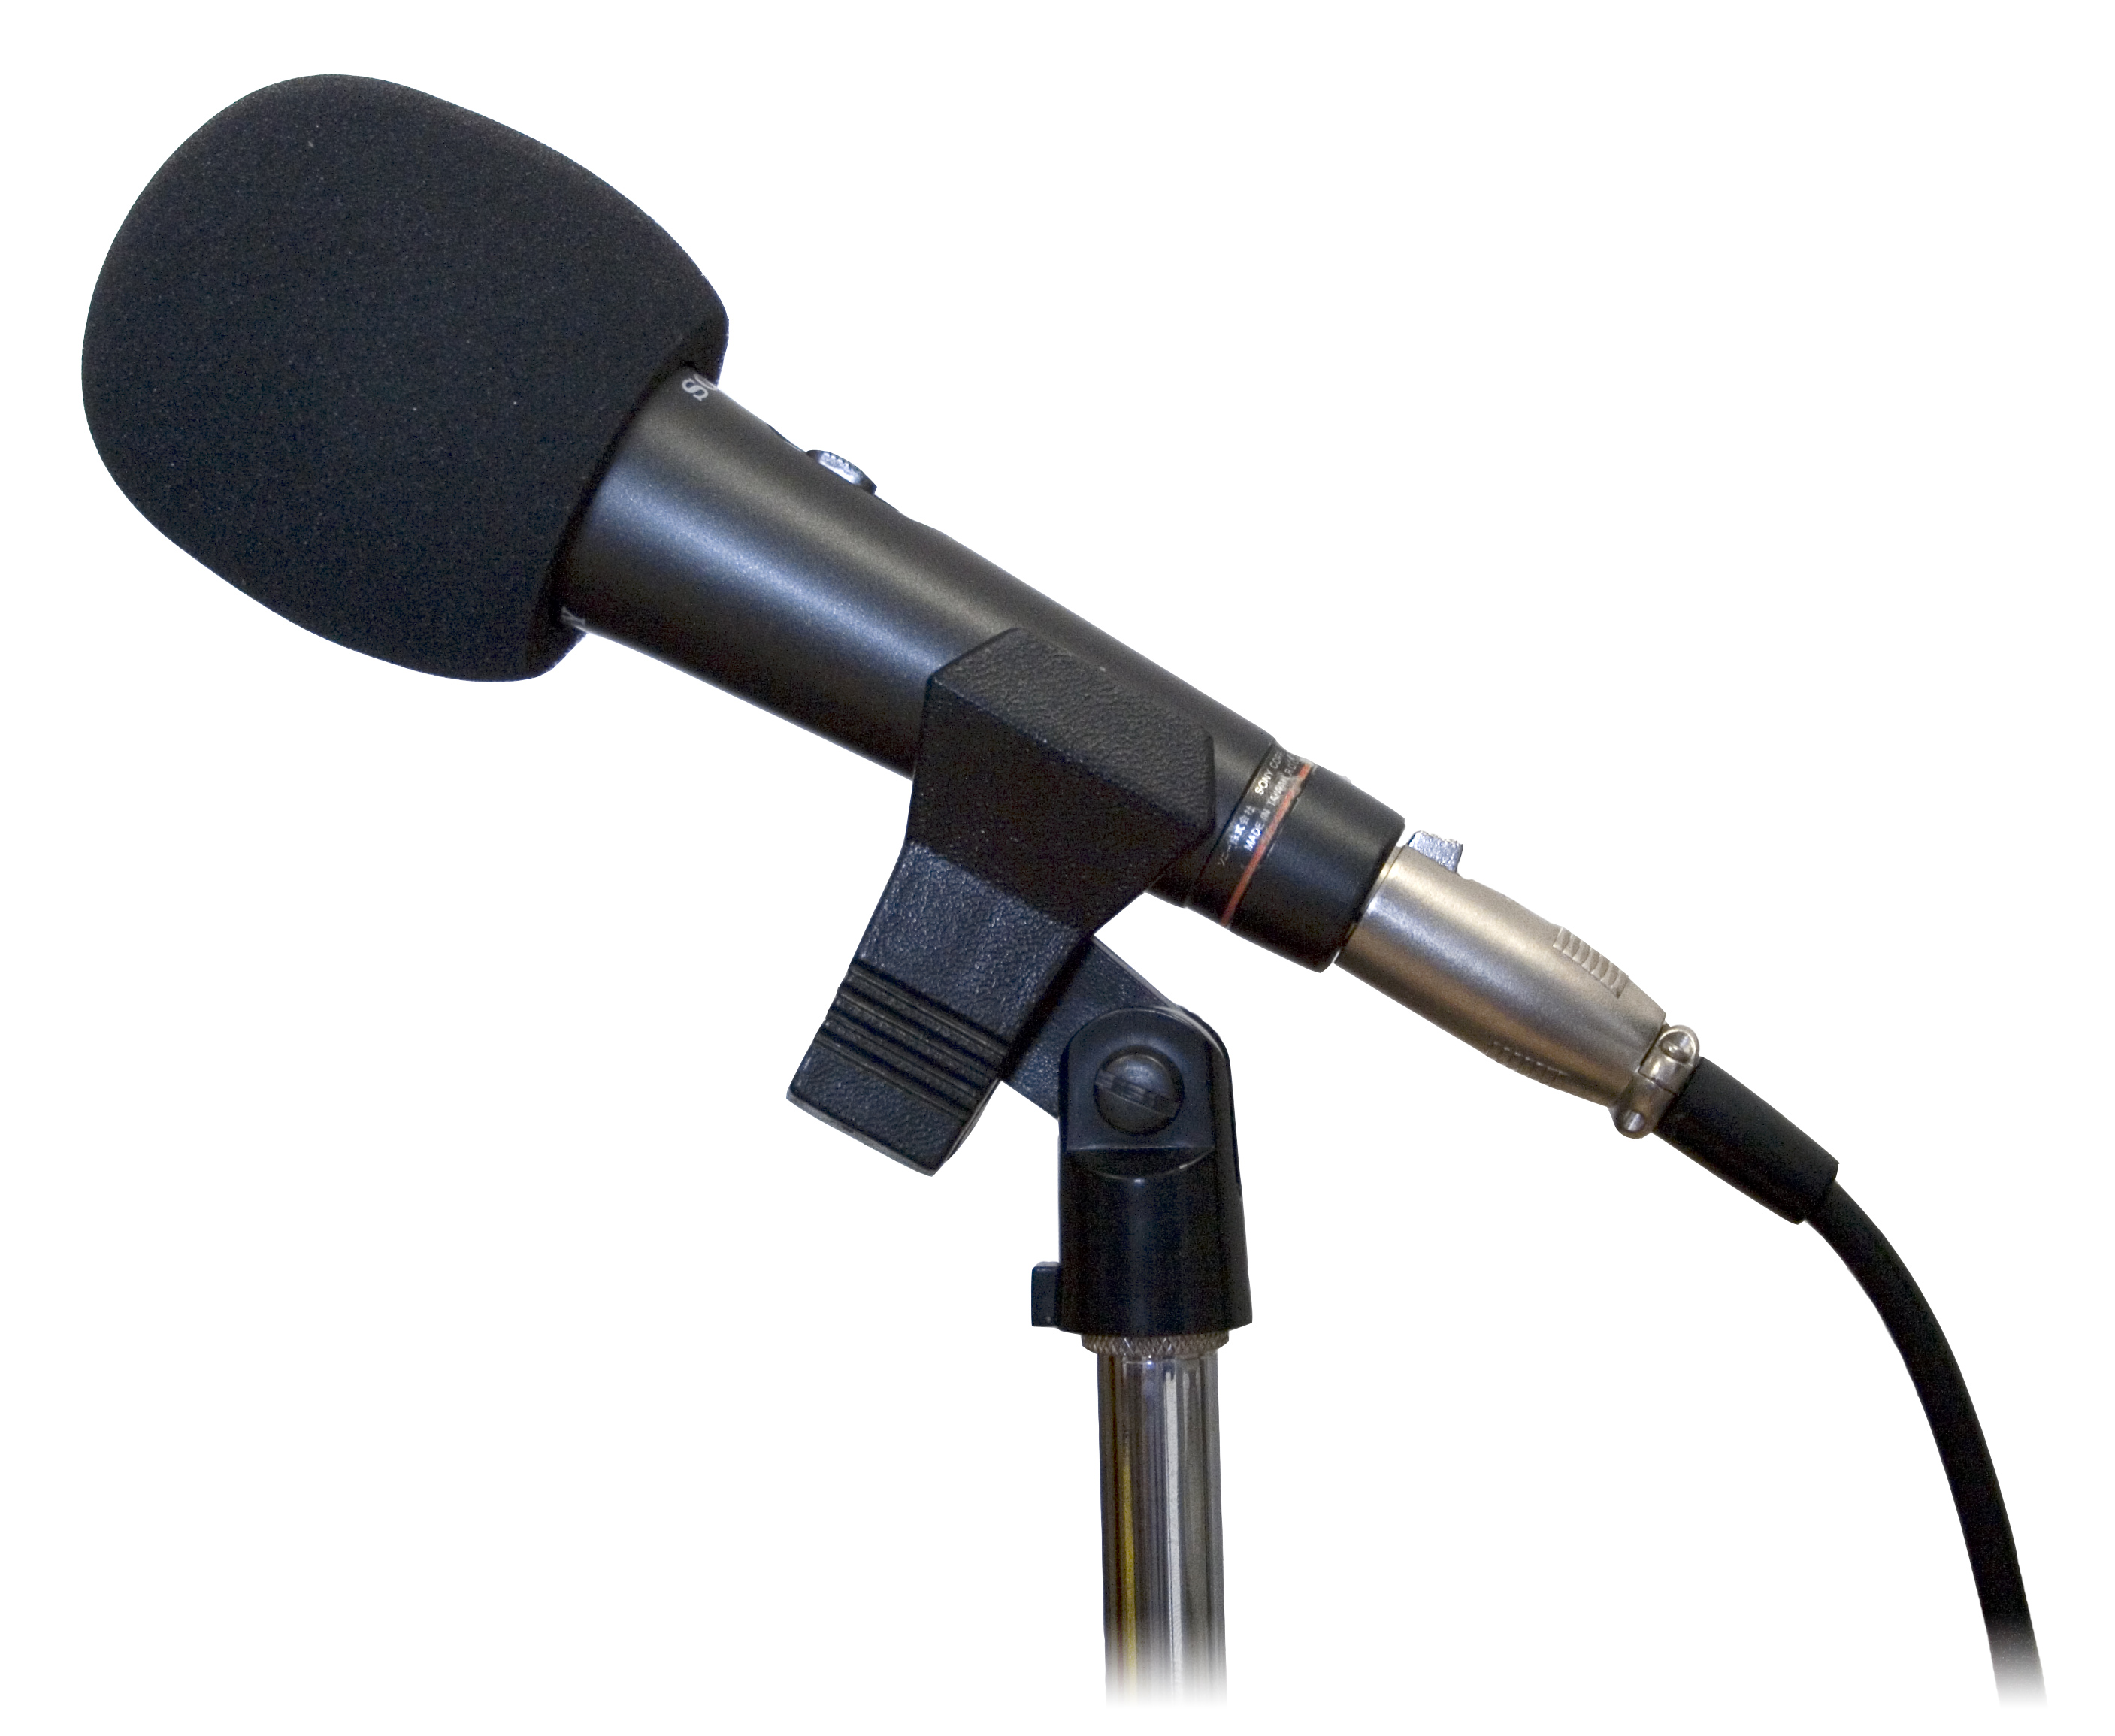 Microphone-Size